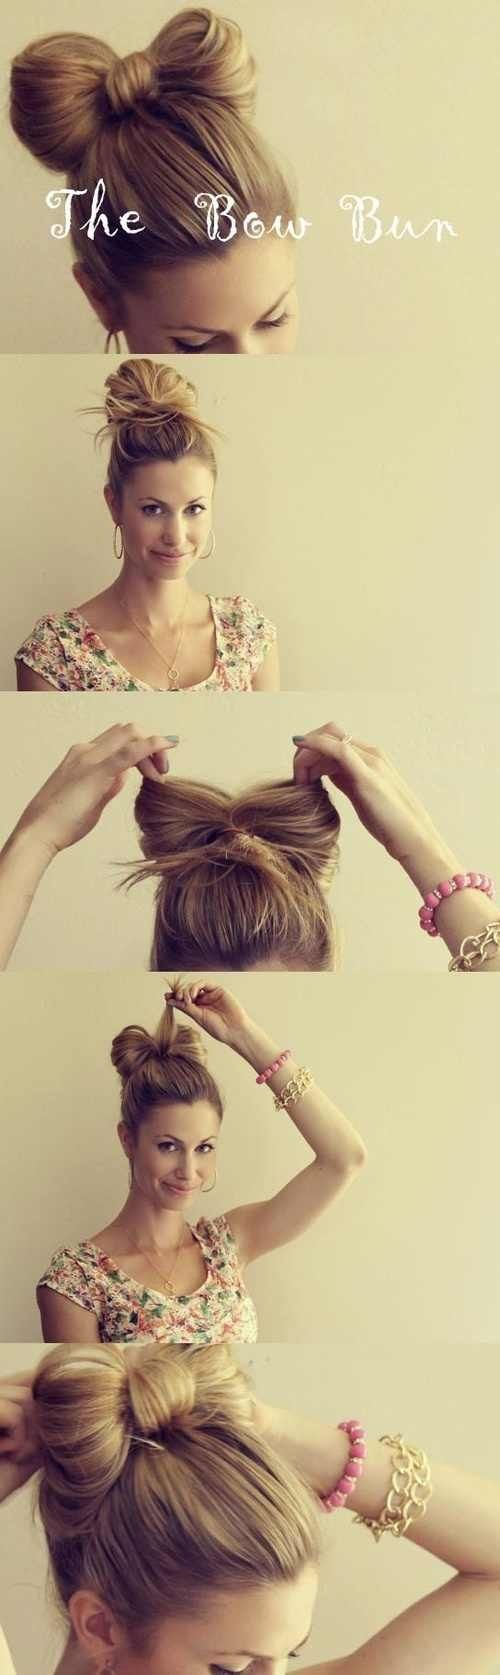 Fun natural look good for ballet hair bow crazy cool hairstyles